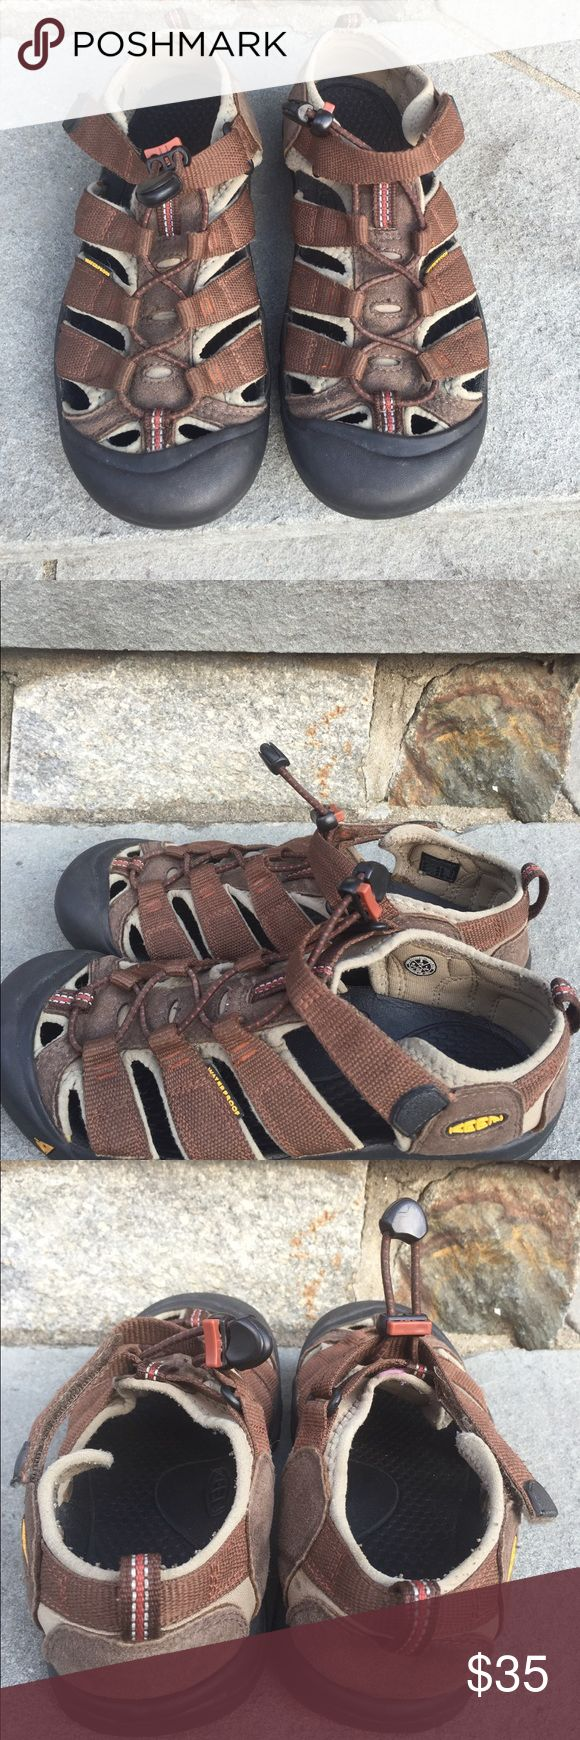 Keen Men's size 5 Water Shoes Brown Keen Big Boy size 5, brown water shoes, Velcro strap, adjustable Pull strap, great for walking in the oceans, River, lakes, boating, very comfortable, pictures are part of the description. Keen Shoes Water Shoes